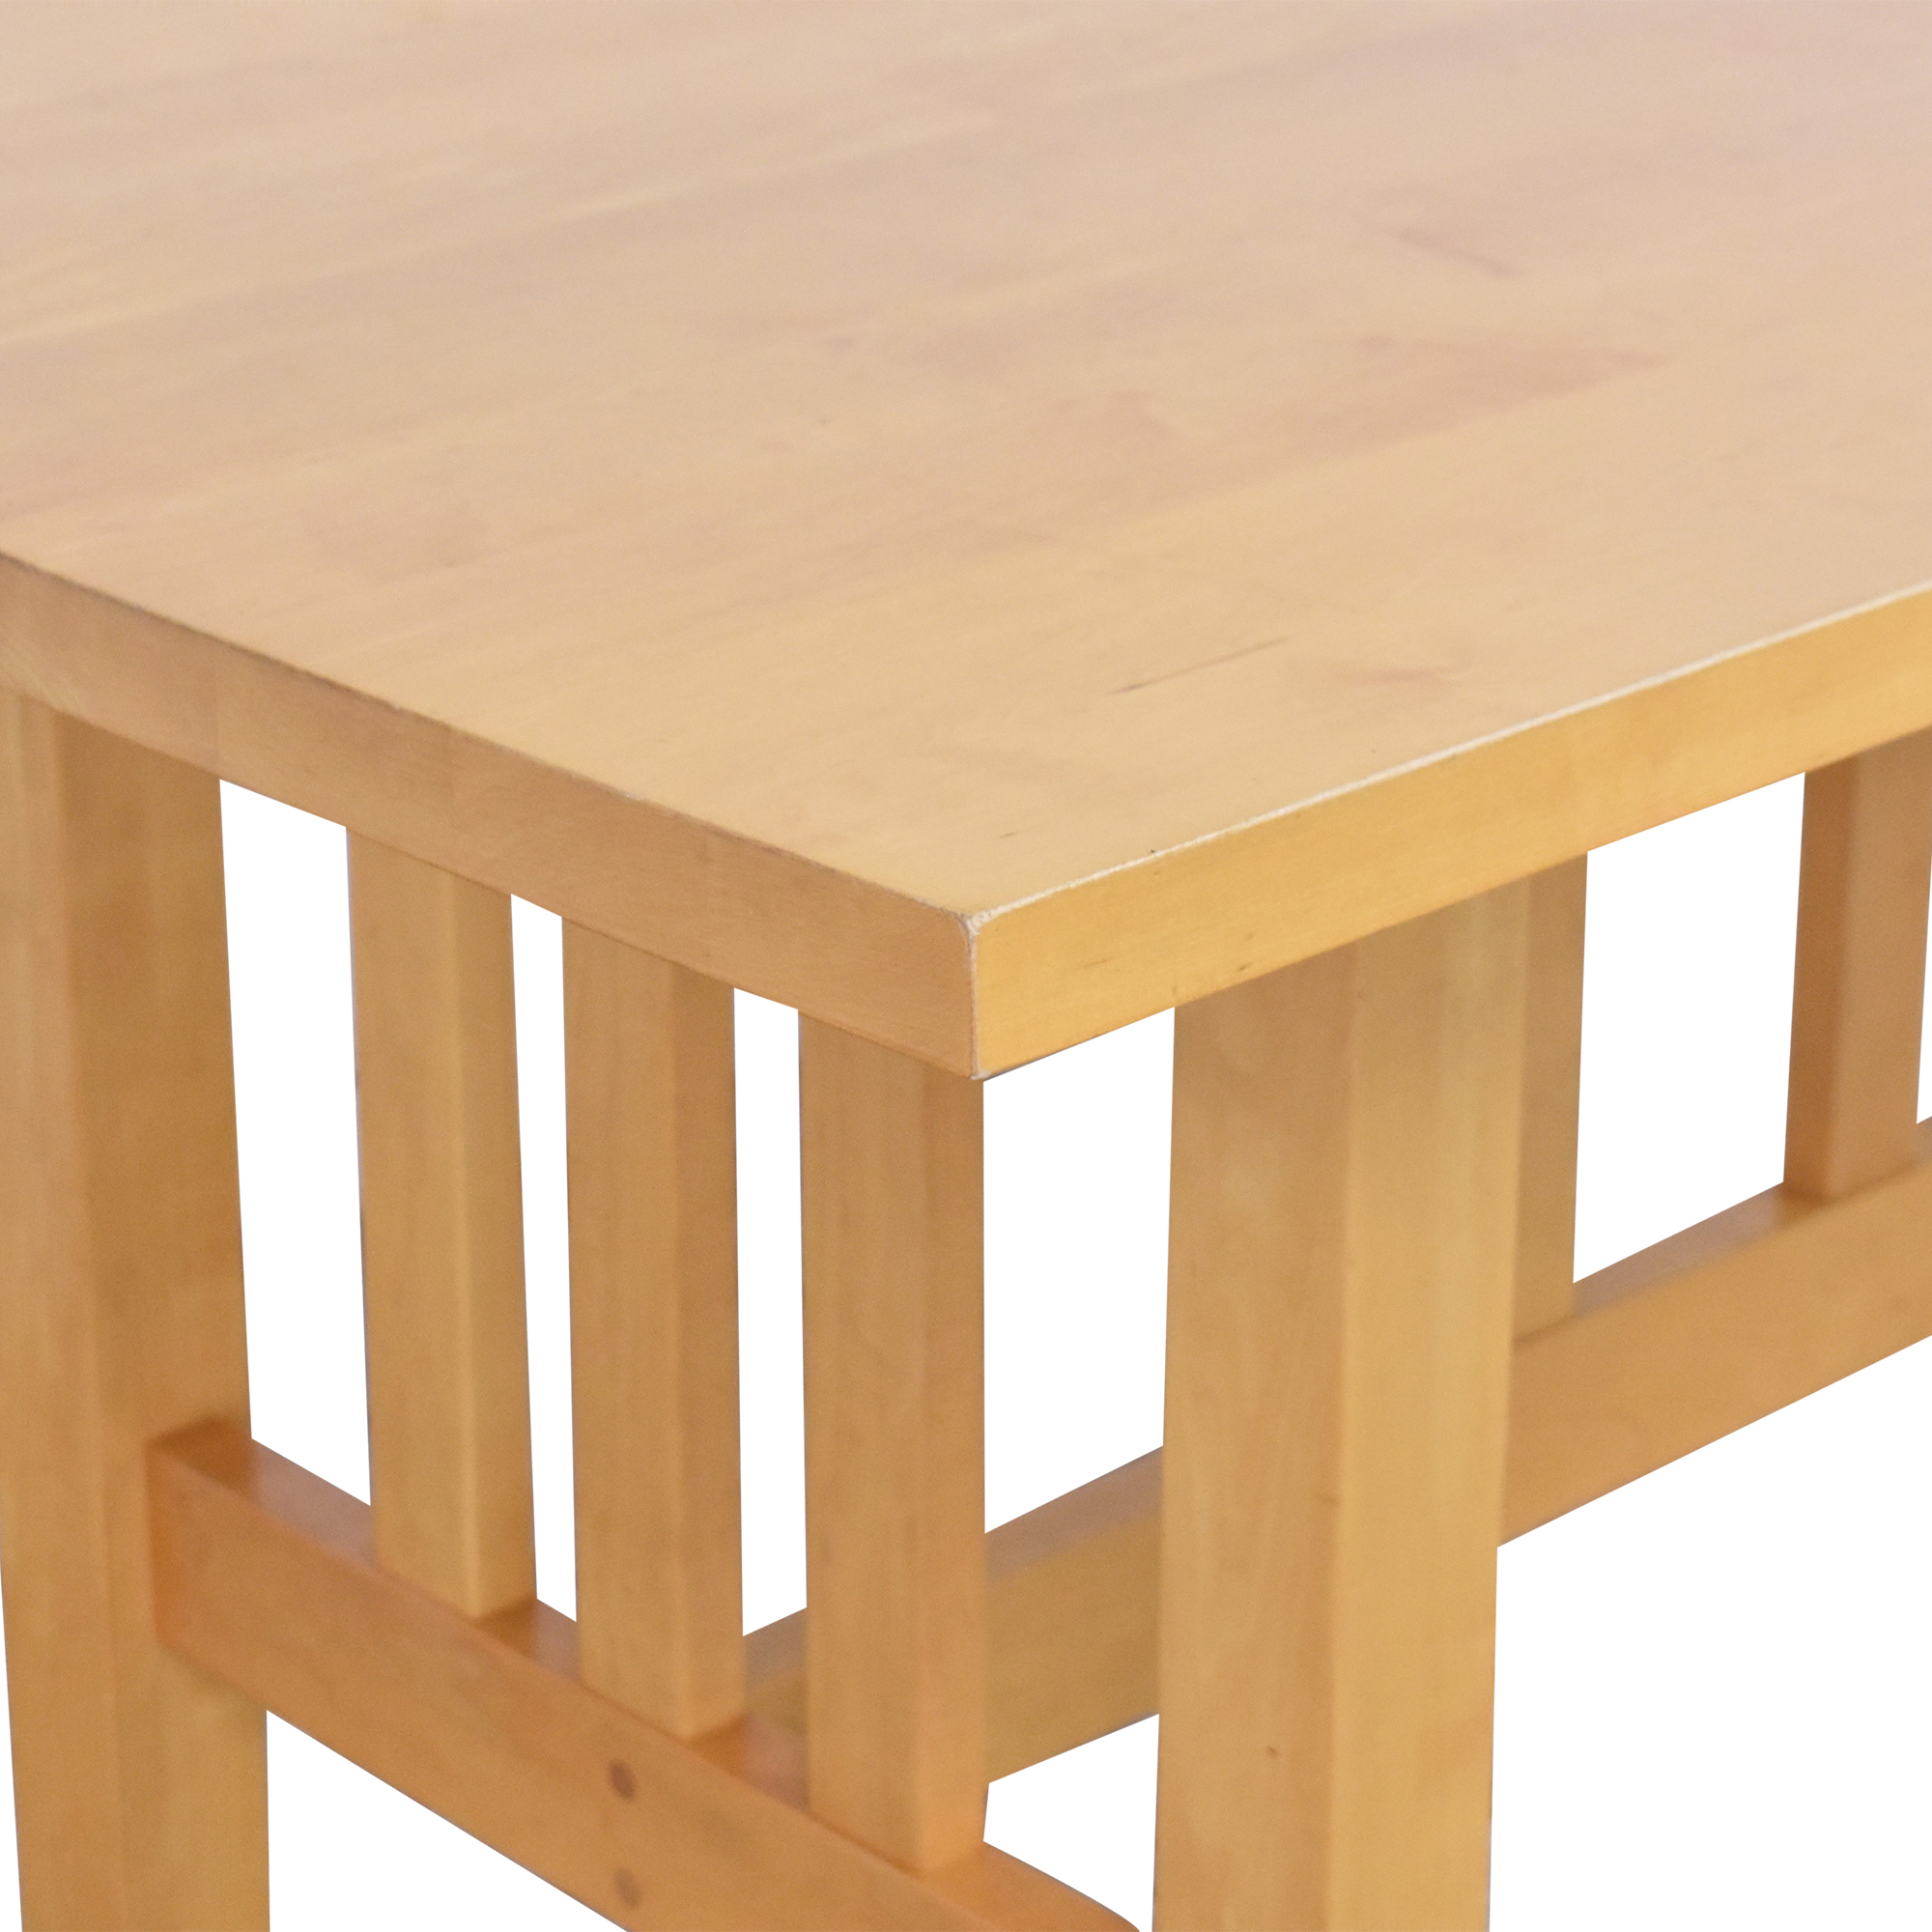 Pompanoosuc Mills Pompanoosuc Mills Brandon Mission Dining Table for sale